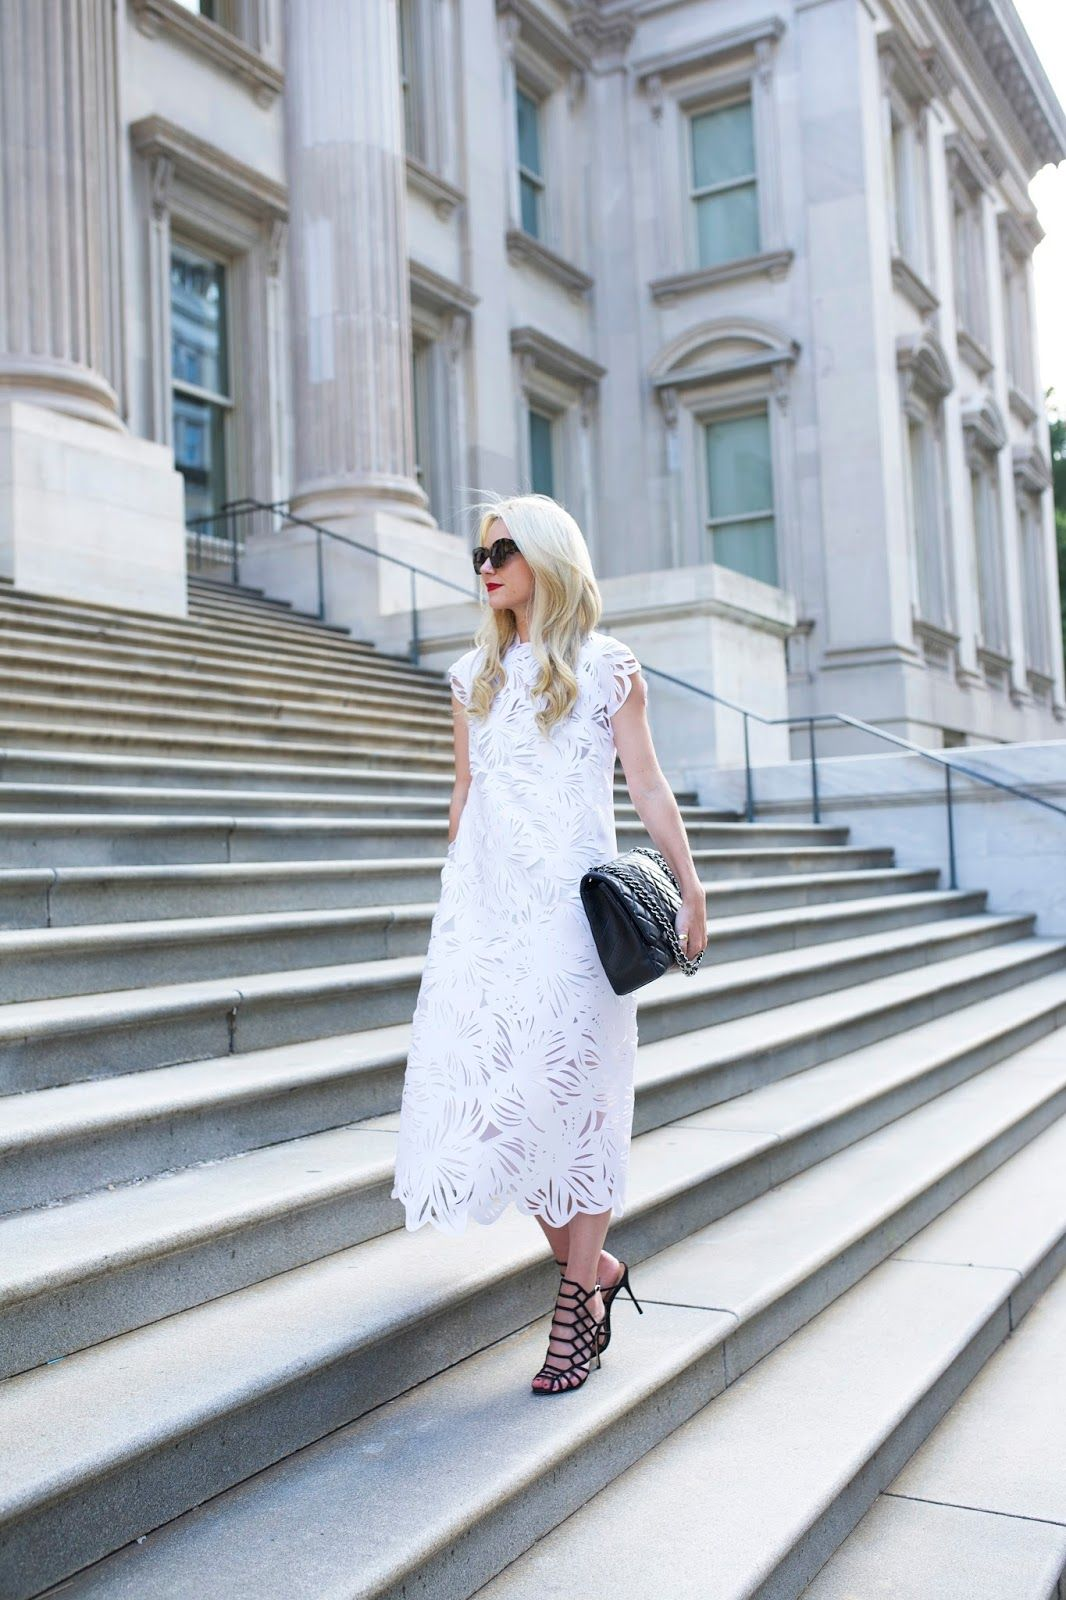 Lace dress styles for funeral  What to Wear to a Funeral  Atlantic pacific Sandals and White lace